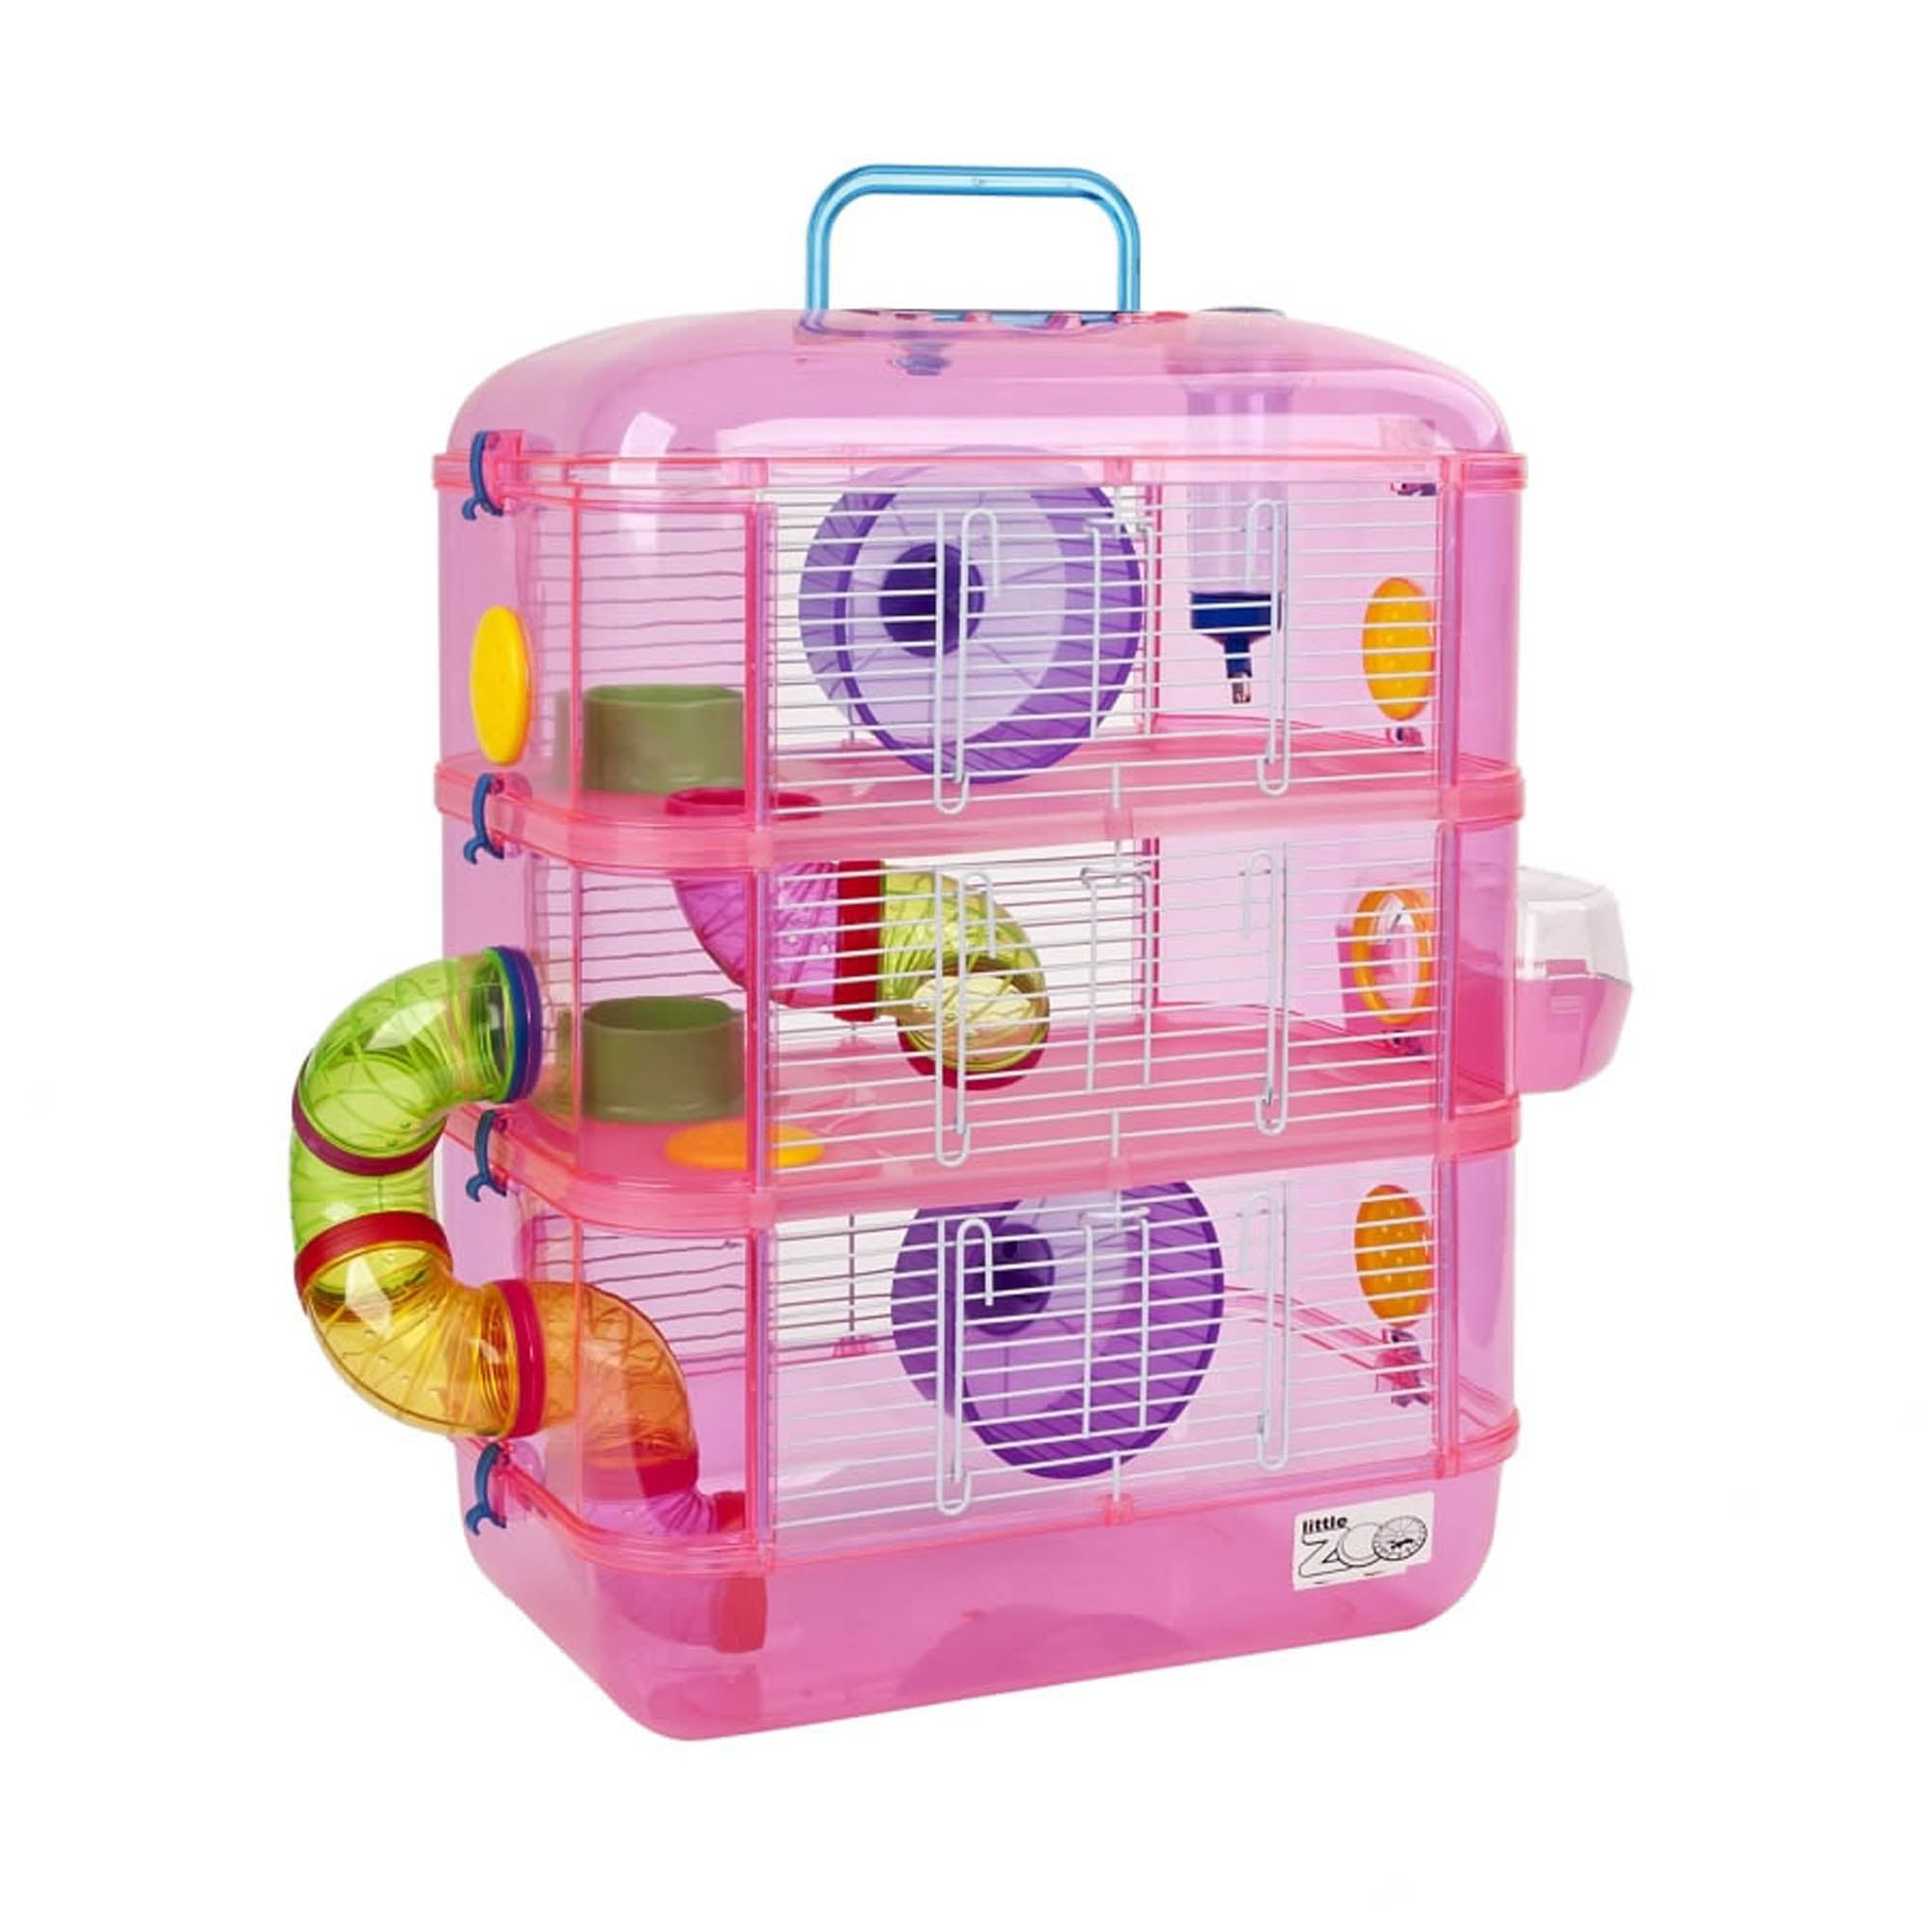 Fantasia Pink Hamster Cage Strawberry (Pink)